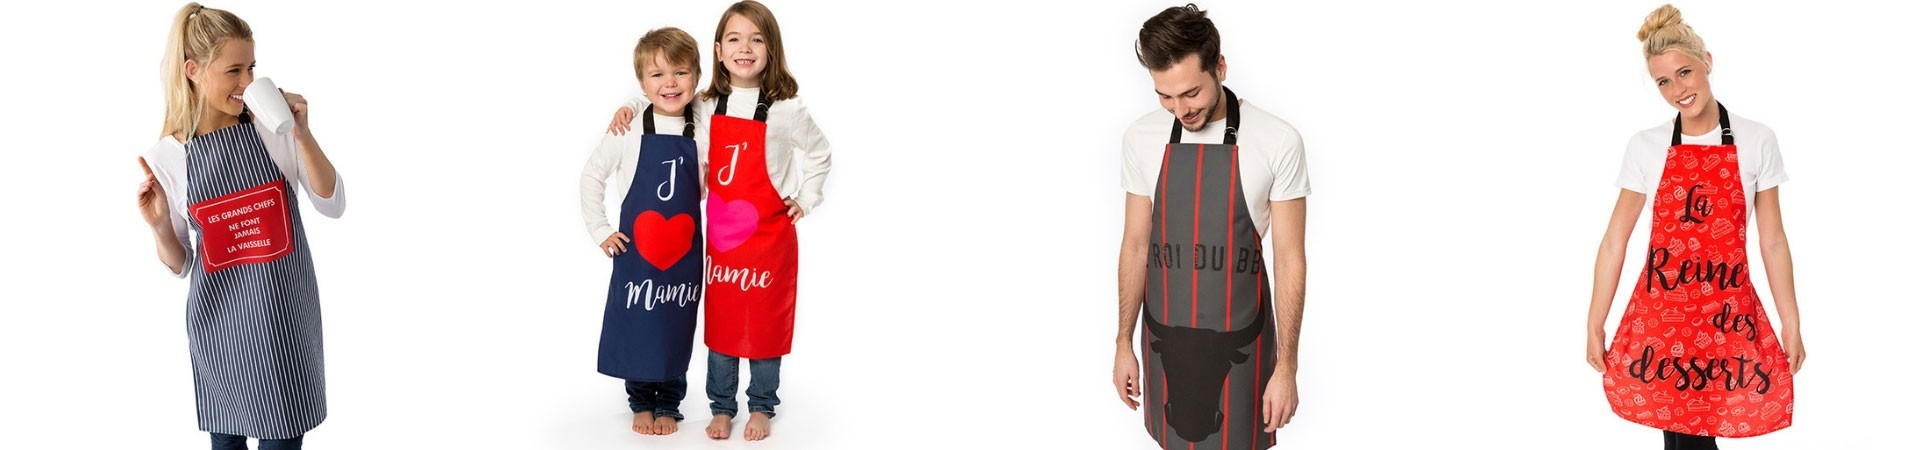 Funny and fashionable aprons for men and women